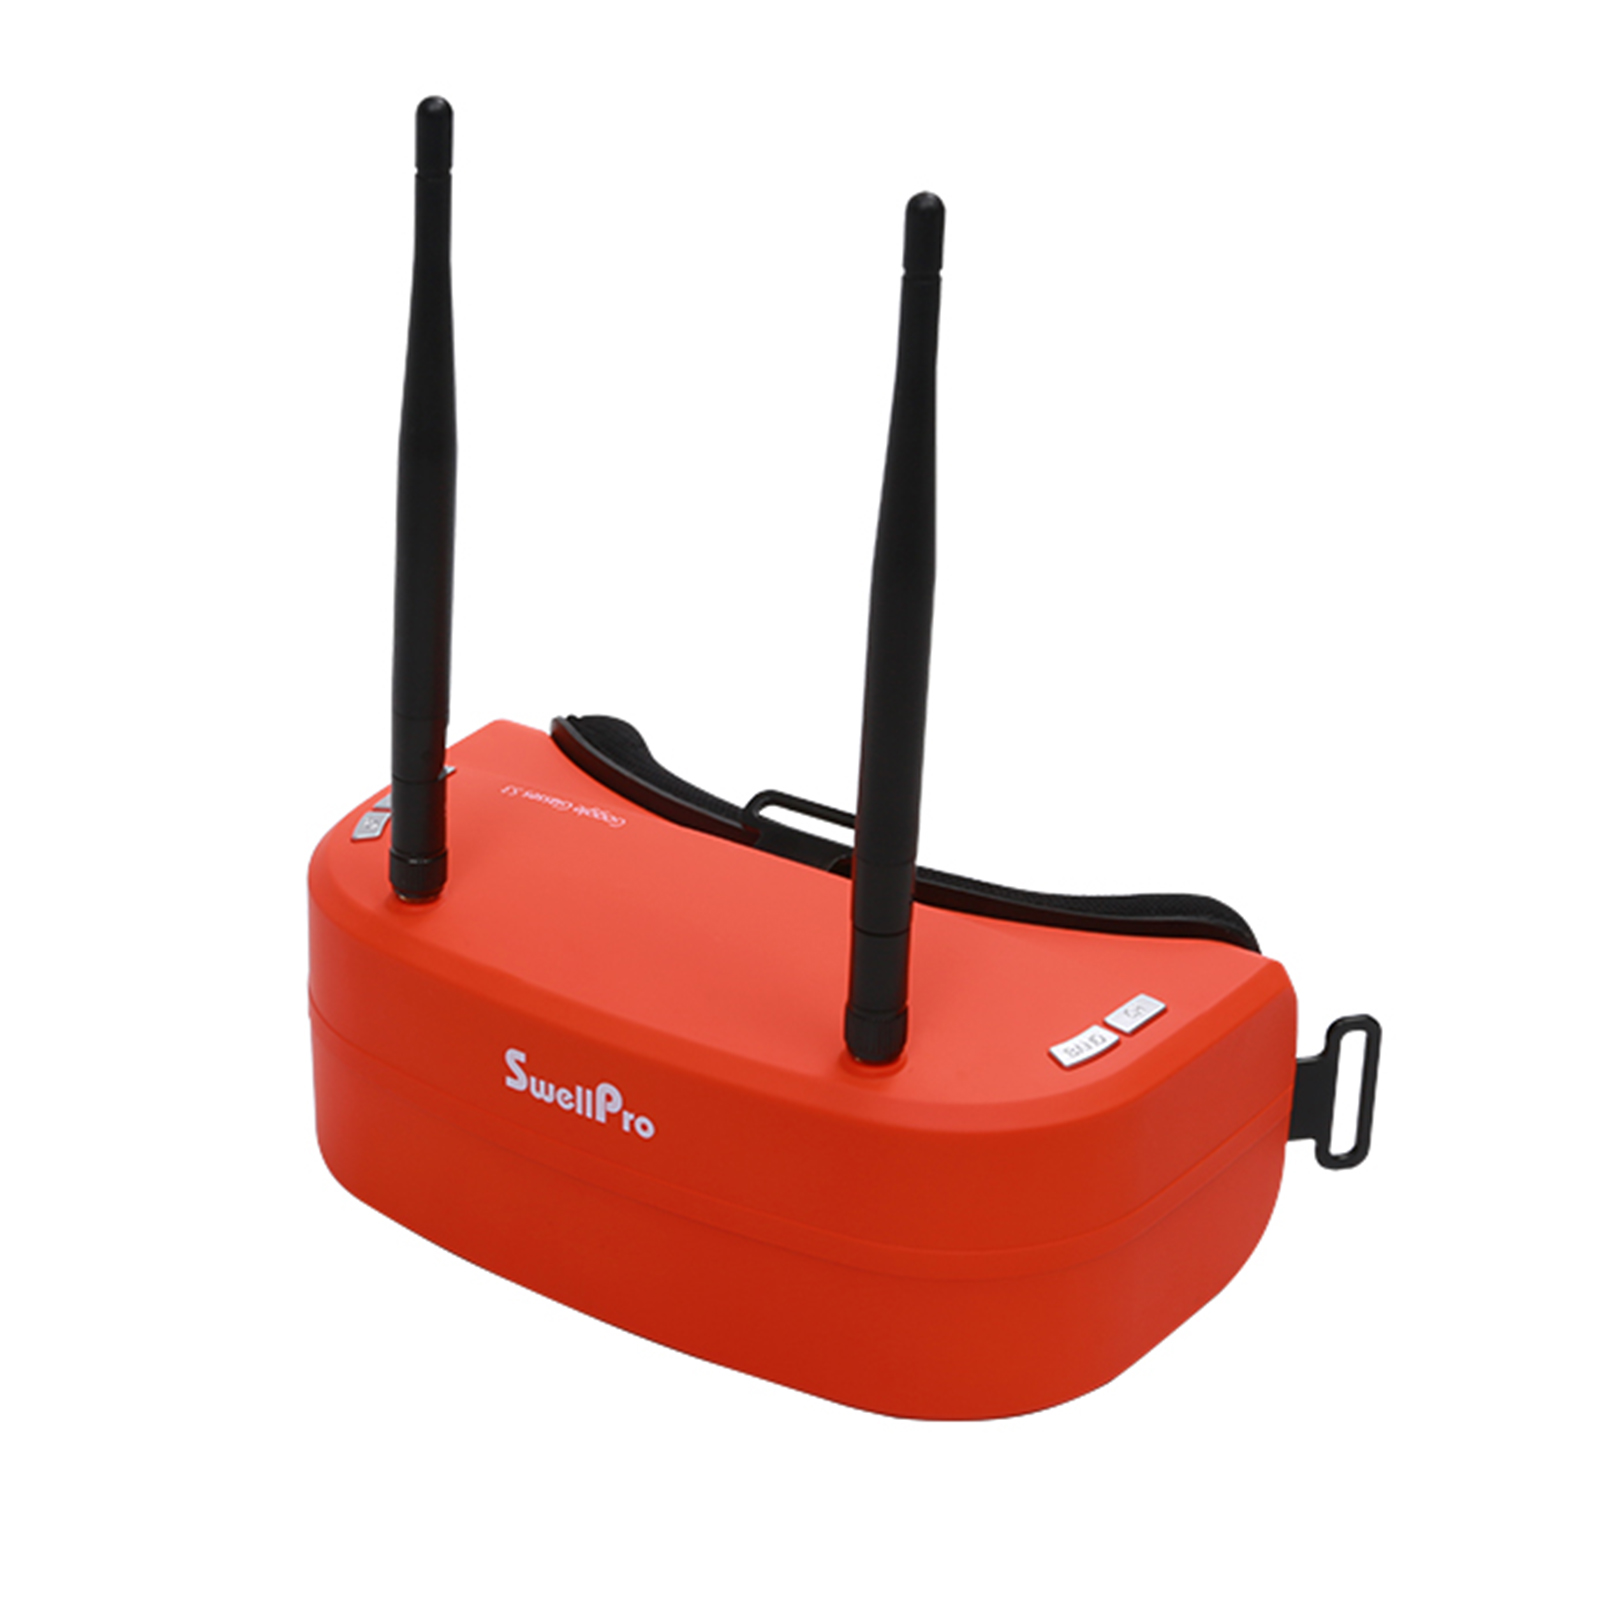 Swellpro S3 FPV Goggles For SplashDrone, DJI & most 5.8G Video Transmitters